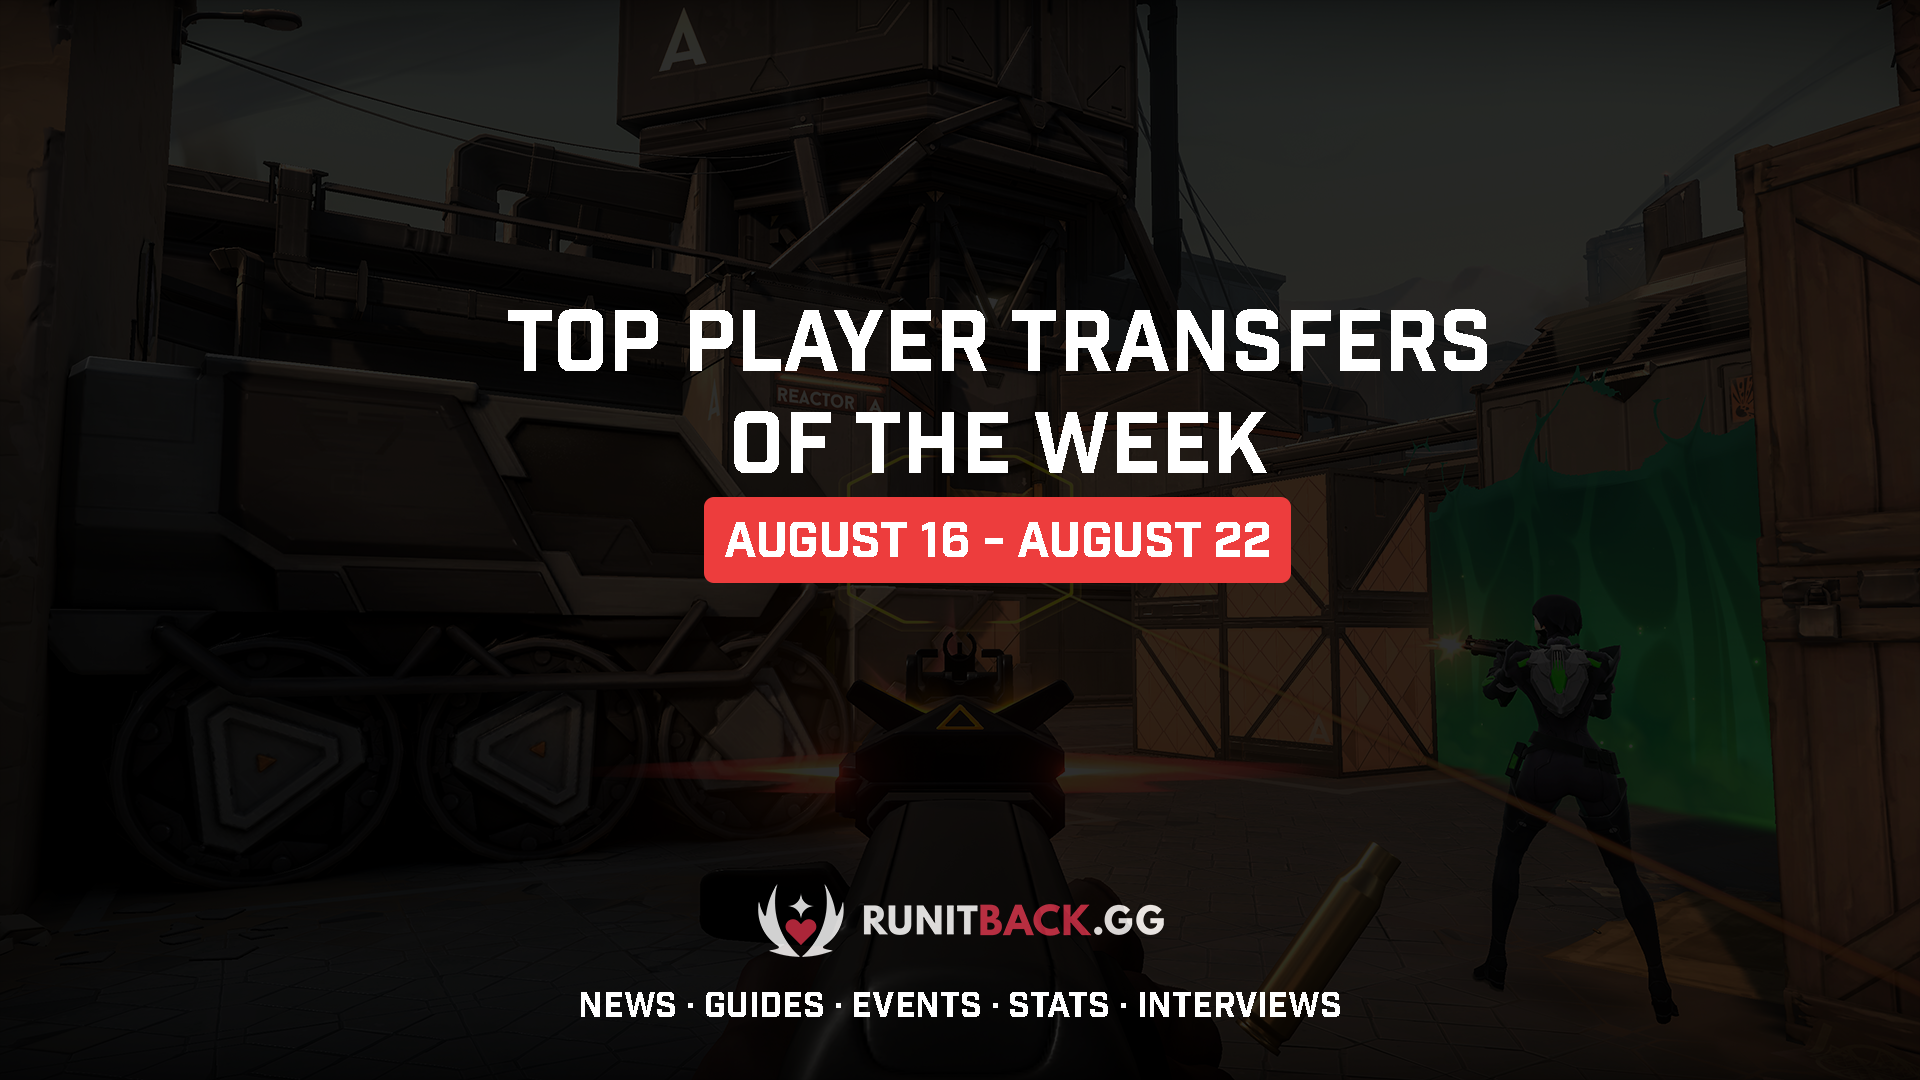 Top Player Transfers of the Week 8/16-8/22